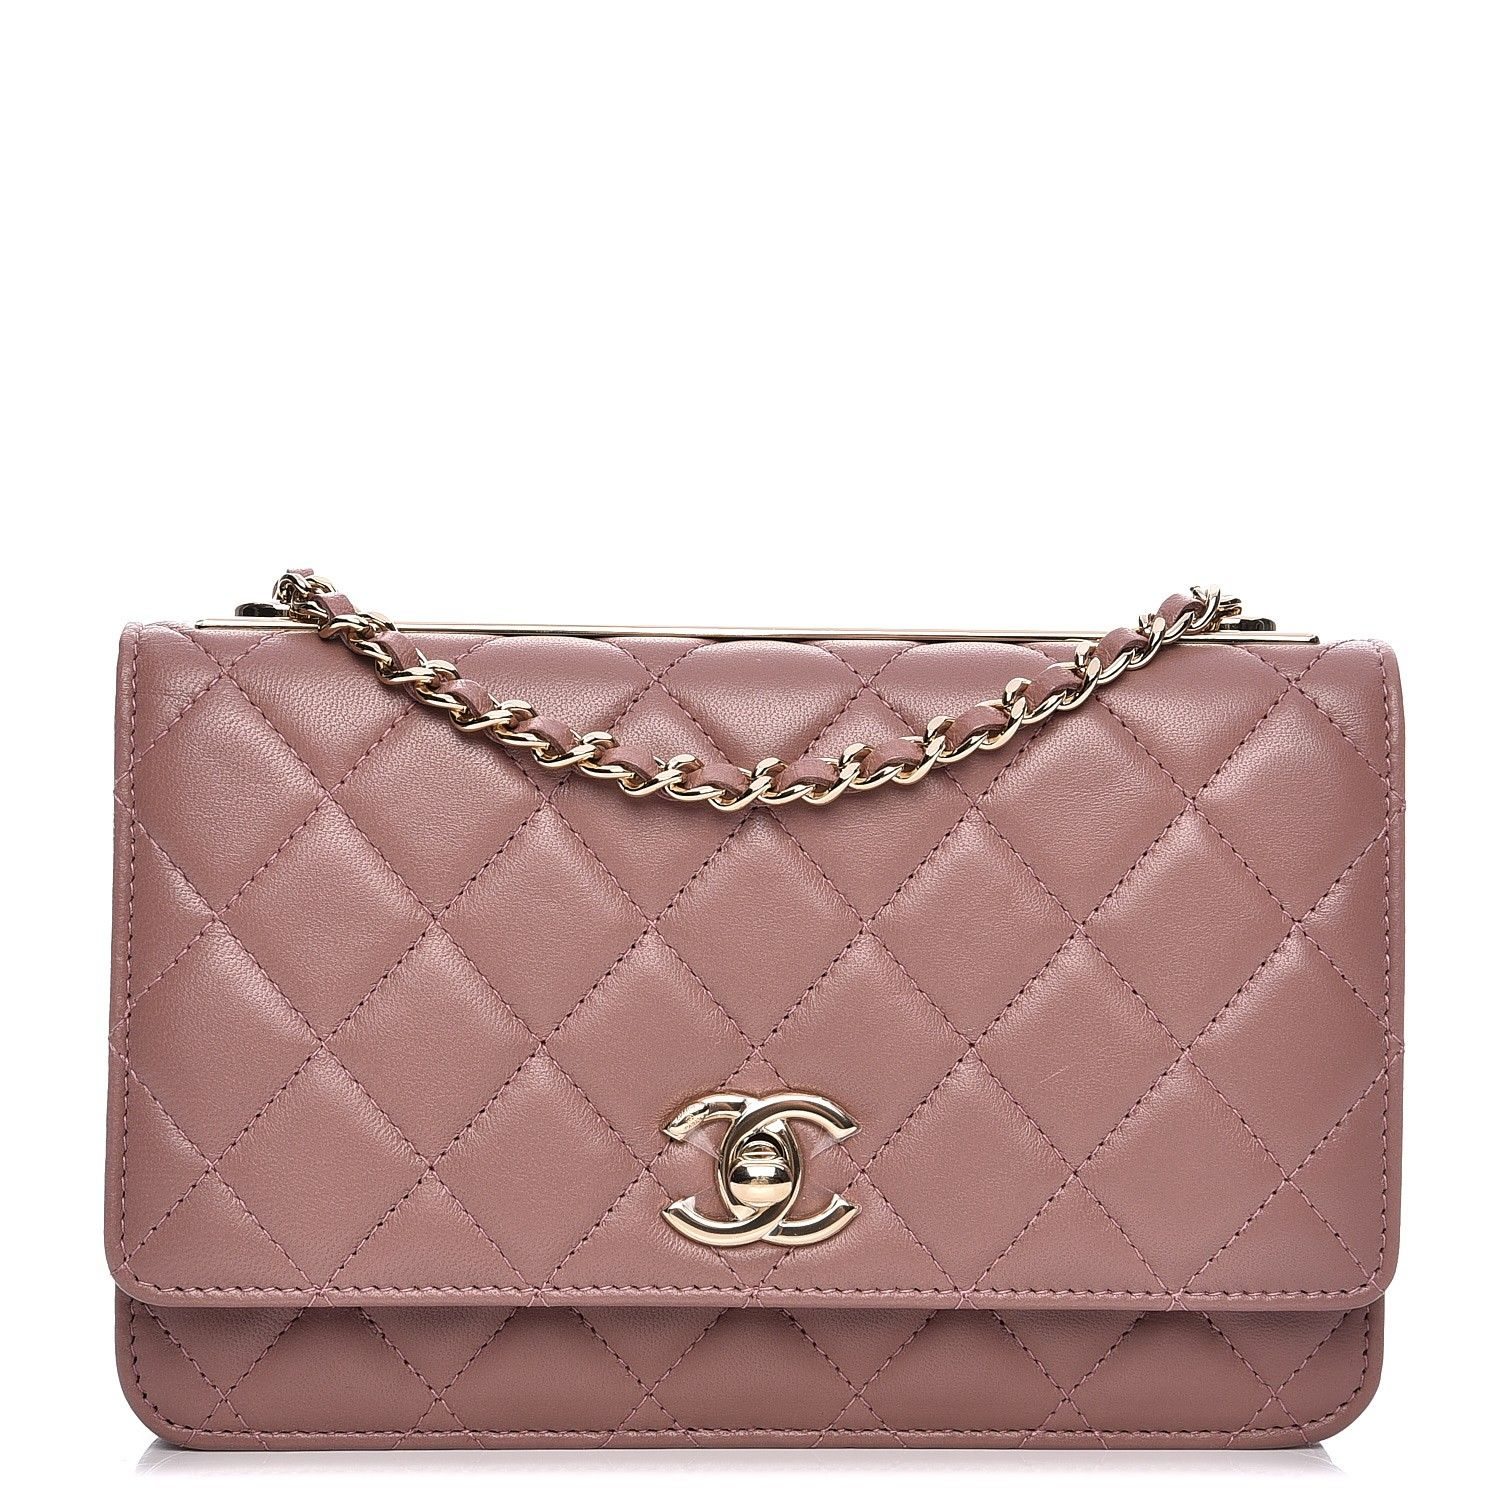 fdc382c1c60f This authentic CHANEL Lambskin Quilted Trendy CC Wallet On Chain WOC in  Pink. This wallet is crafted of luxuriously soft diamond quilted lambskin  leather in ...